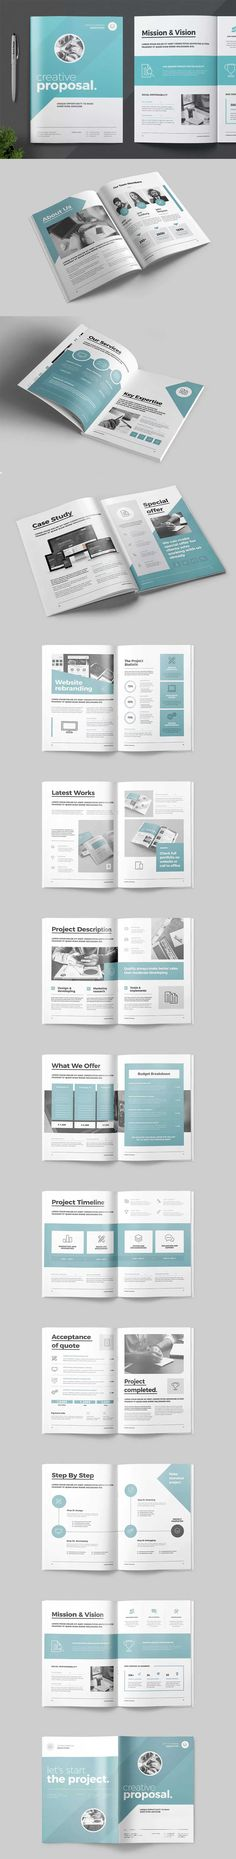 24 Pages Business Project Proposal Template InDesign INDD - business project proposal template